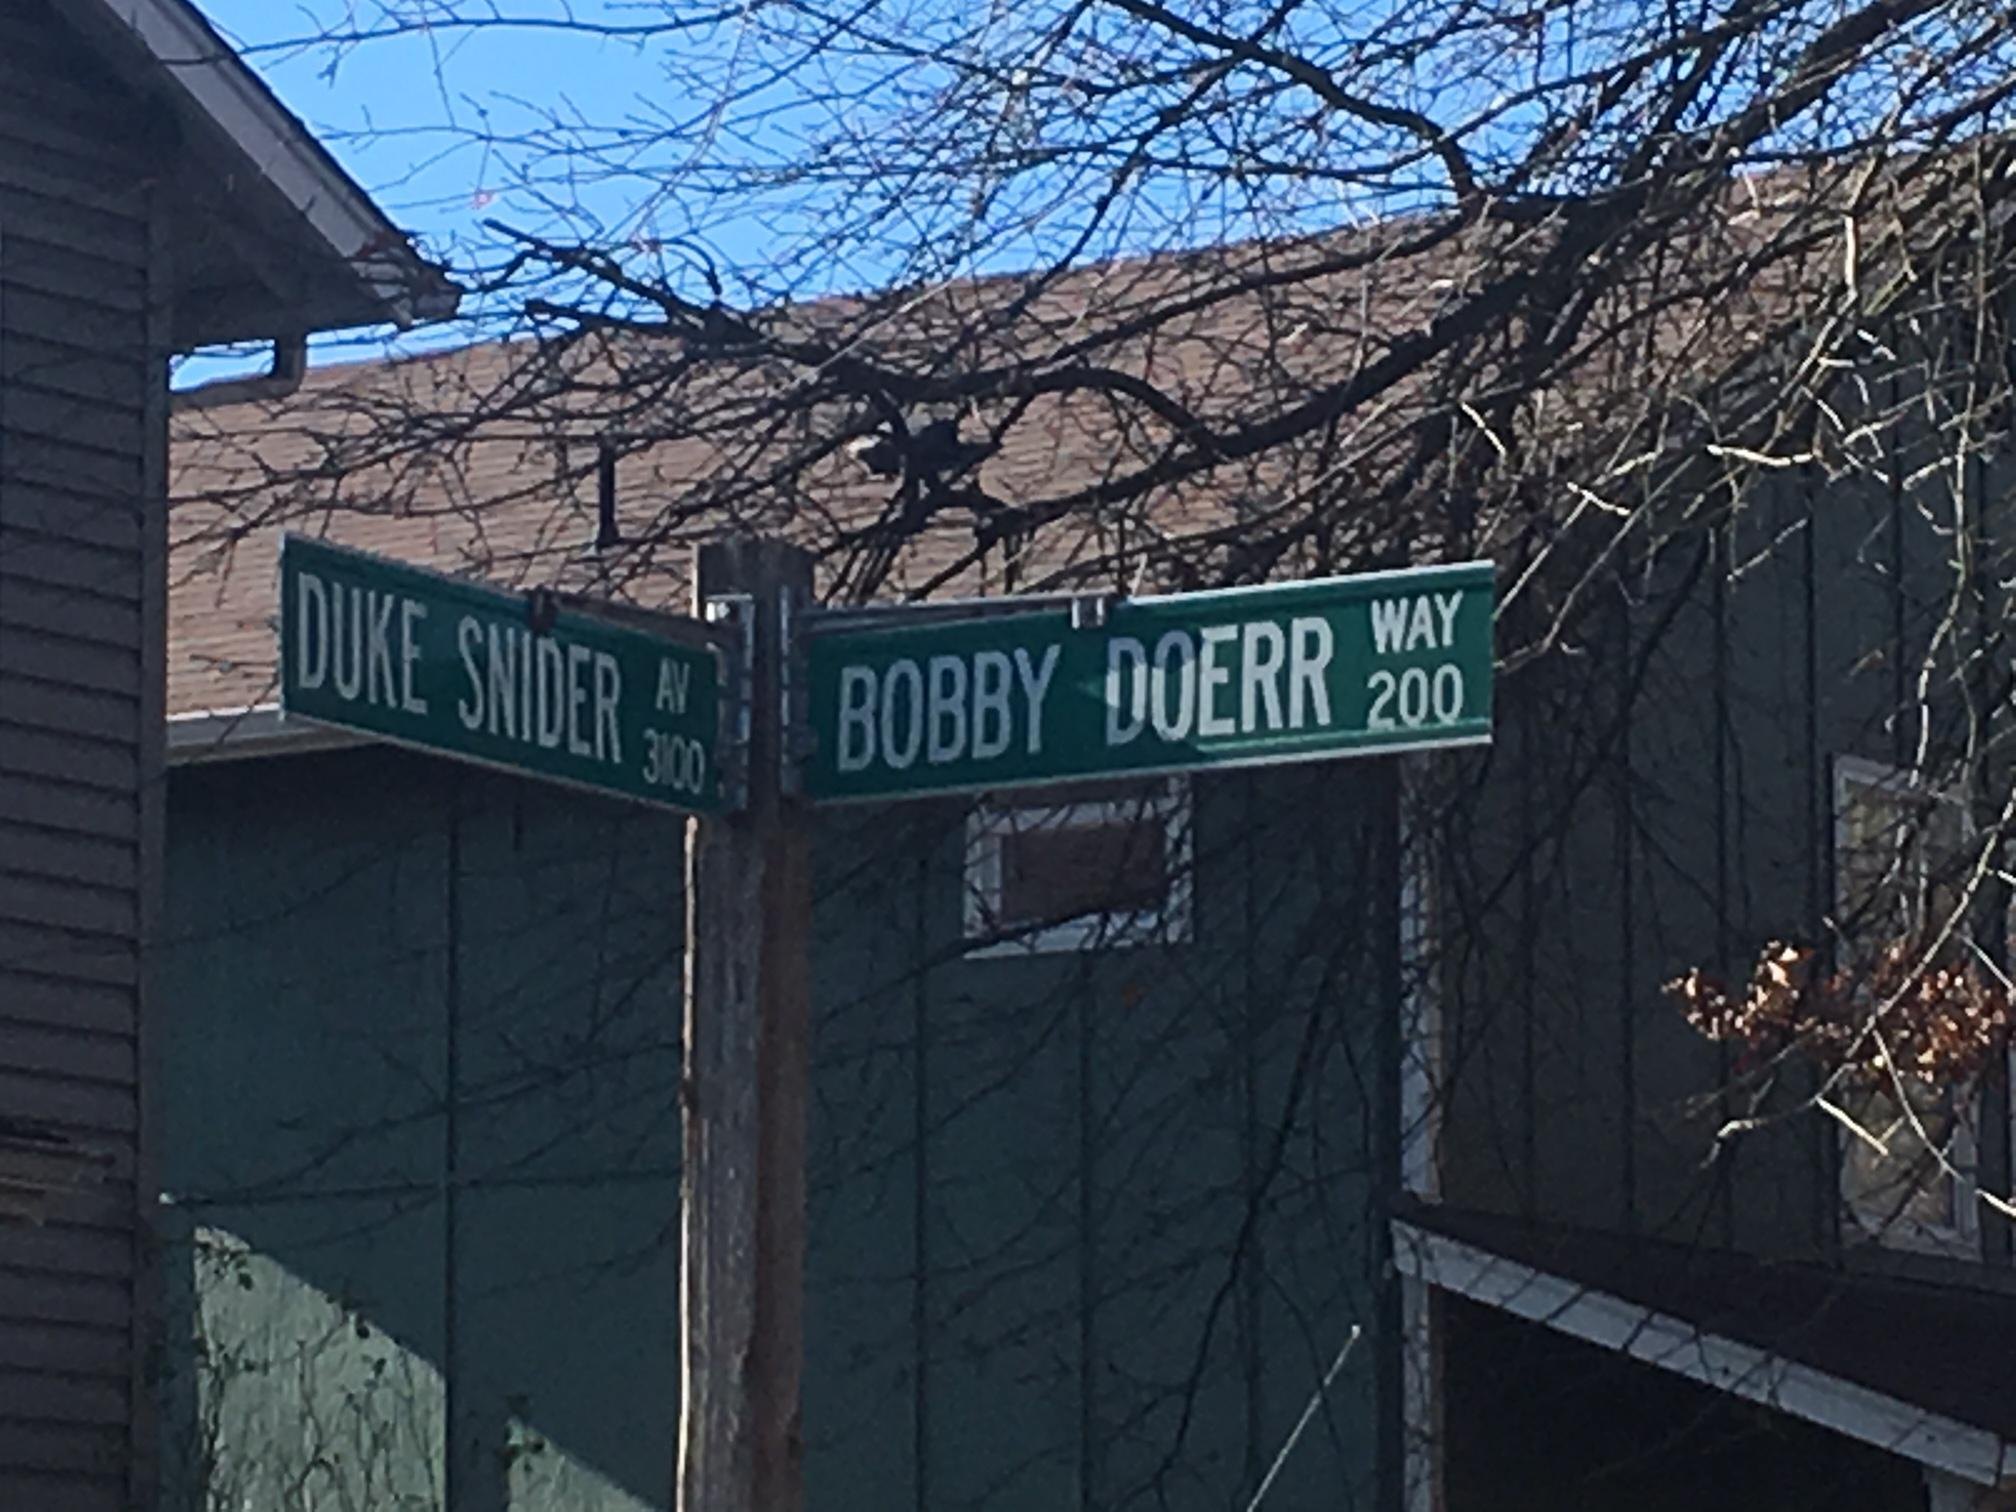 People who live on Bobby Doerr Way in Eugene react to the passing of the Red Sox legend and Junction City resident.